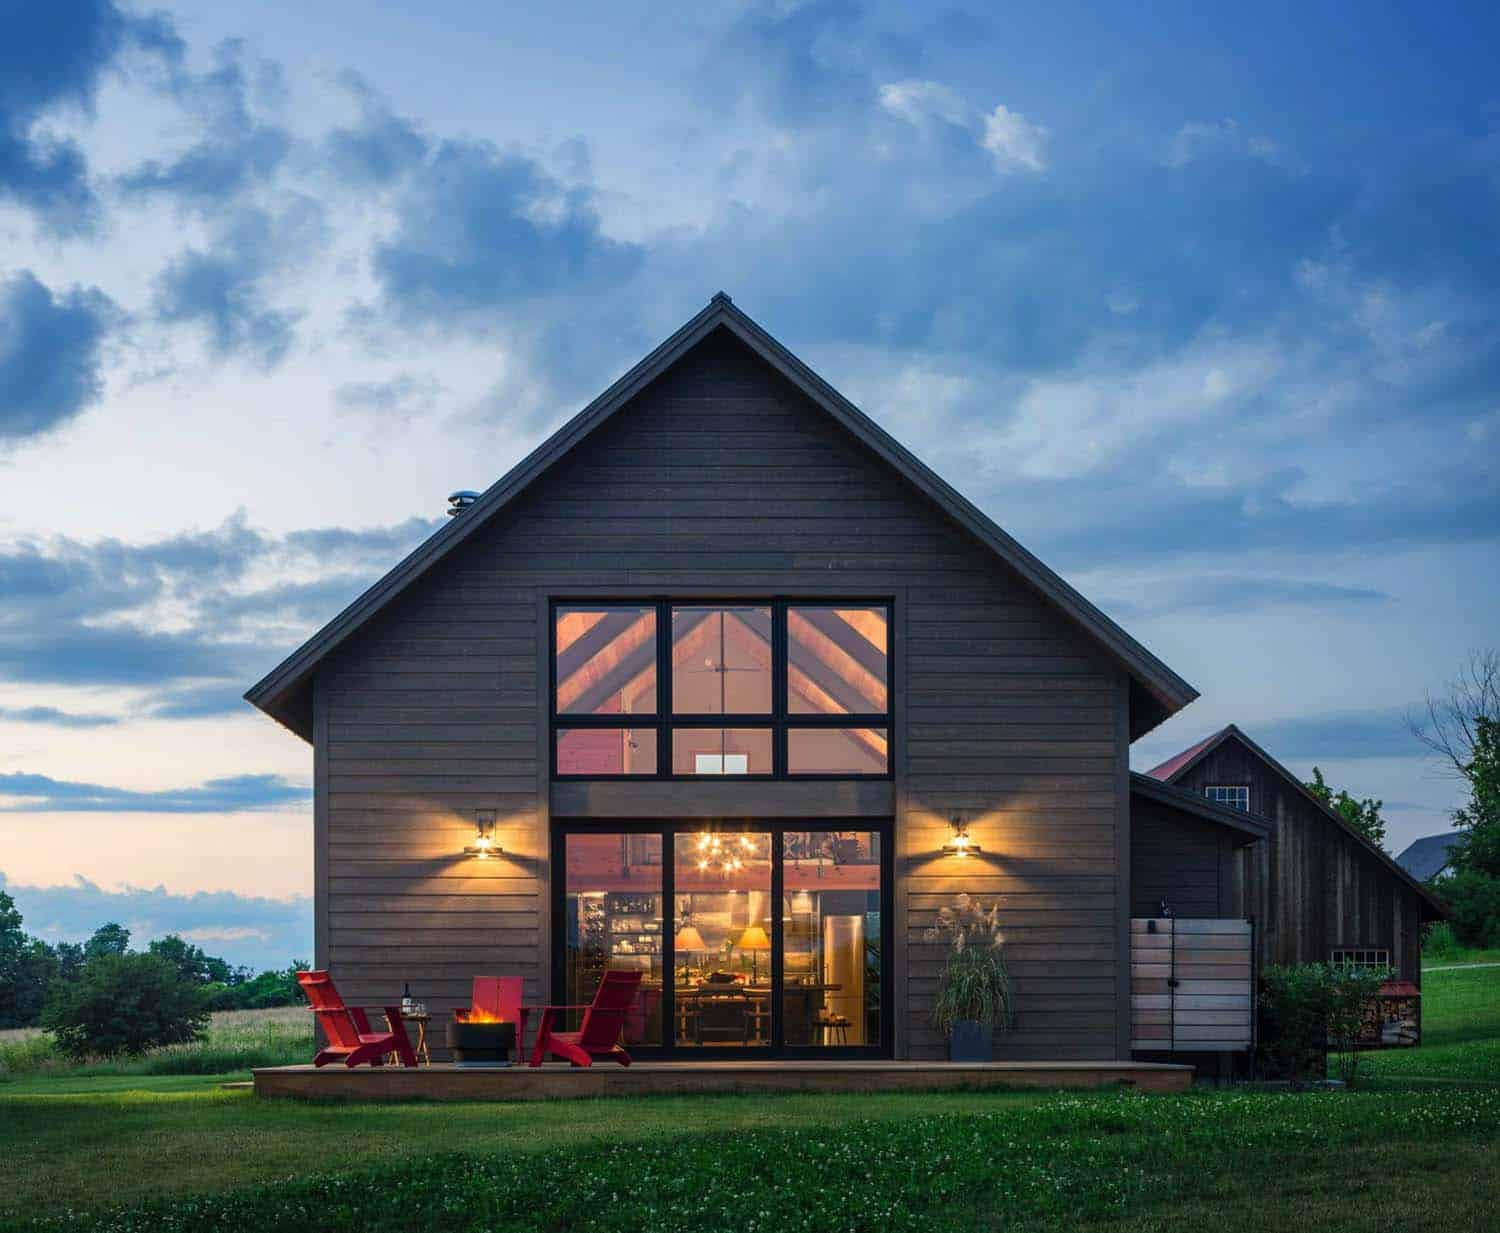 Small and cozy modern barn house getaway in vermont for Barn architecture plans